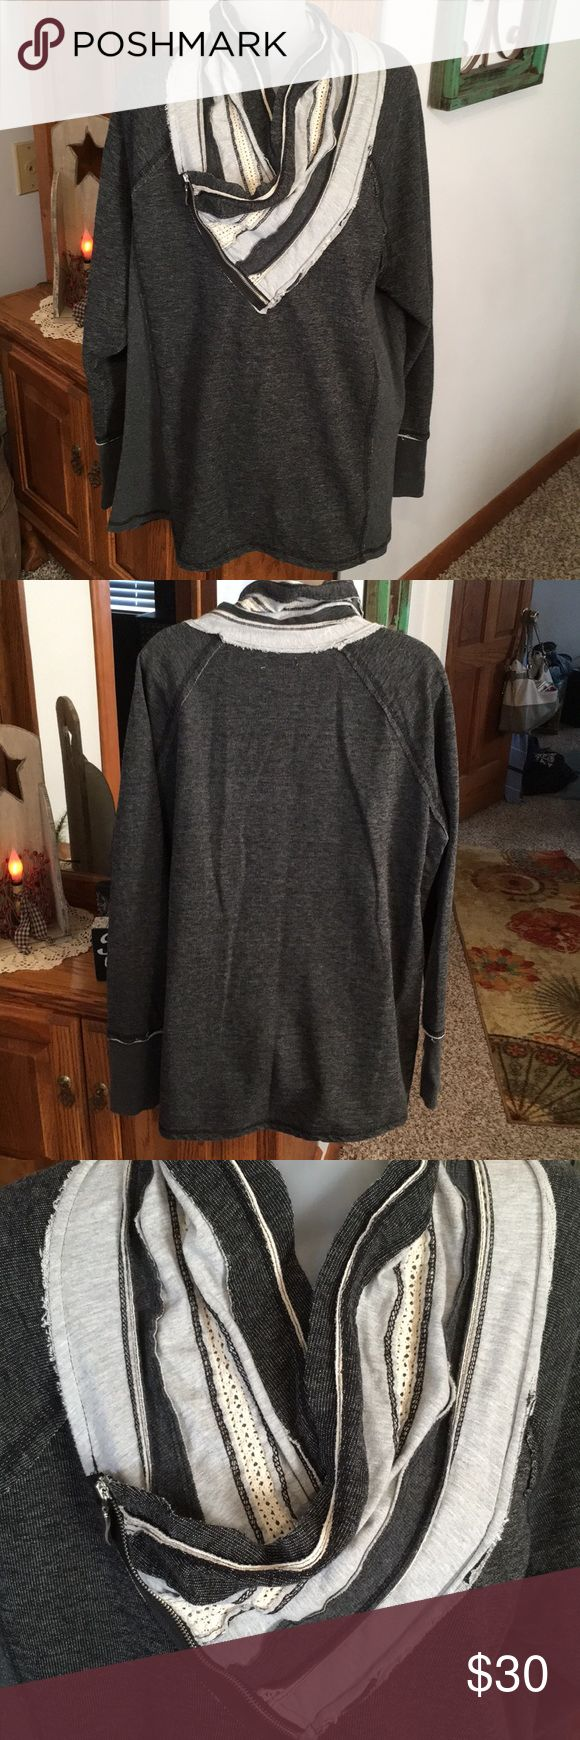 Maurices Plus Size 3 Top Maurices Plus Size 3 Top. So cute!! Collar can be worn a couple of different ways. Purchased at store for $48 and worn twice..,just a little too big.  So many compliments on this Top! Any questions please ask. Thank You 😊 Maurices Tops Sweatshirts & Hoodies